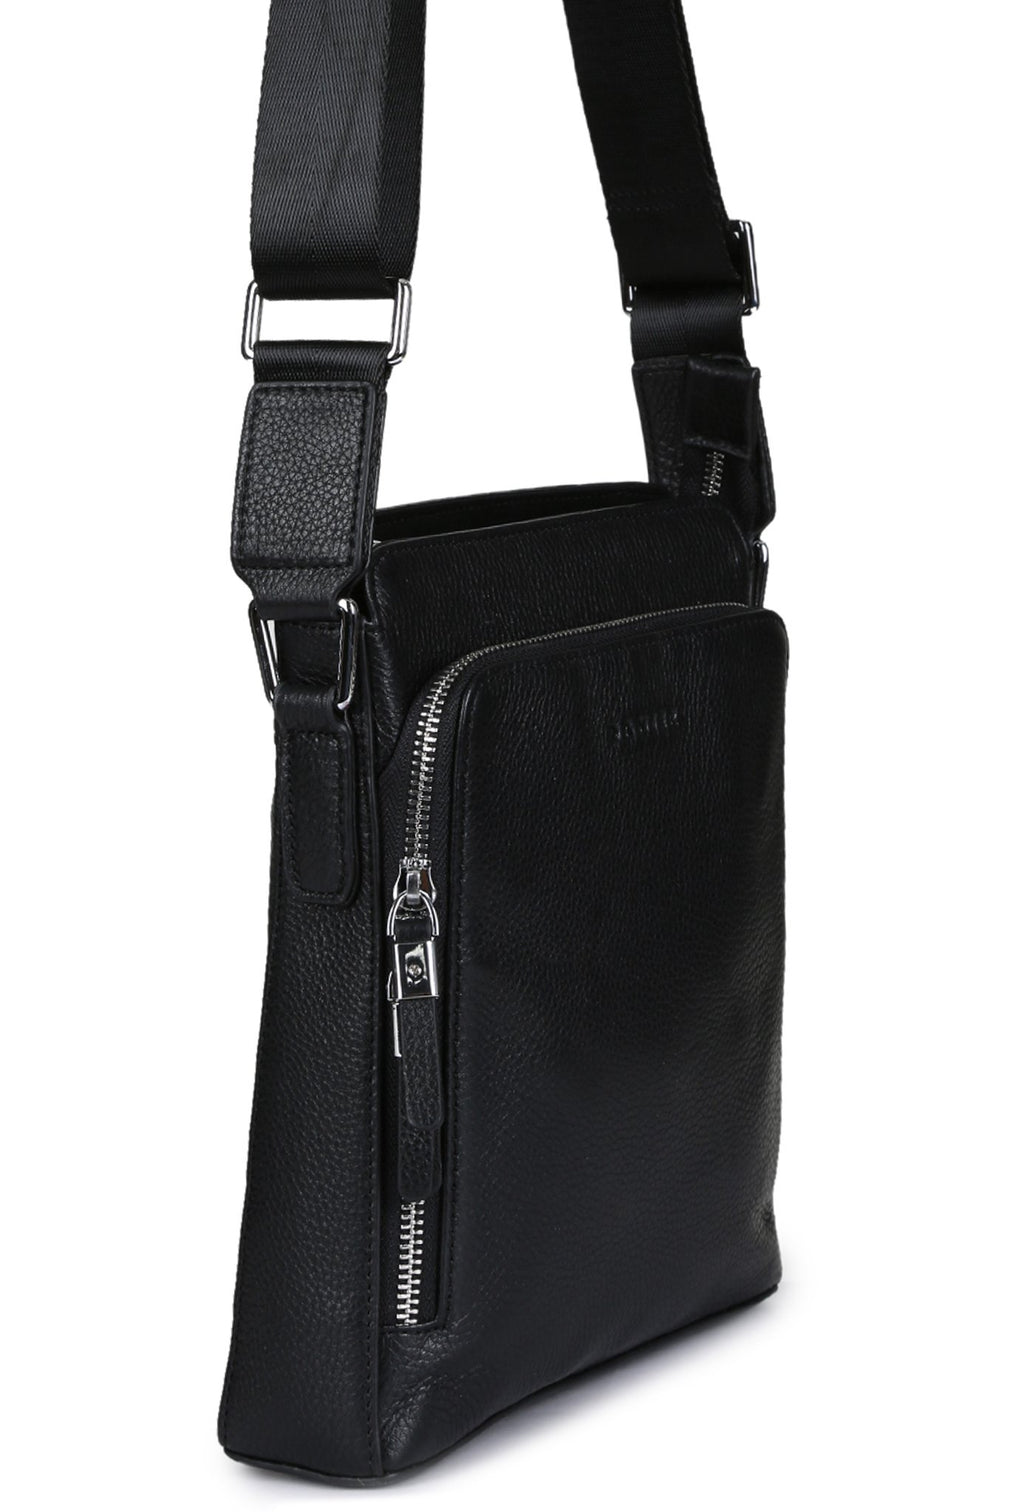 ZANOBI - Pebbled Leather Crossbody - Black